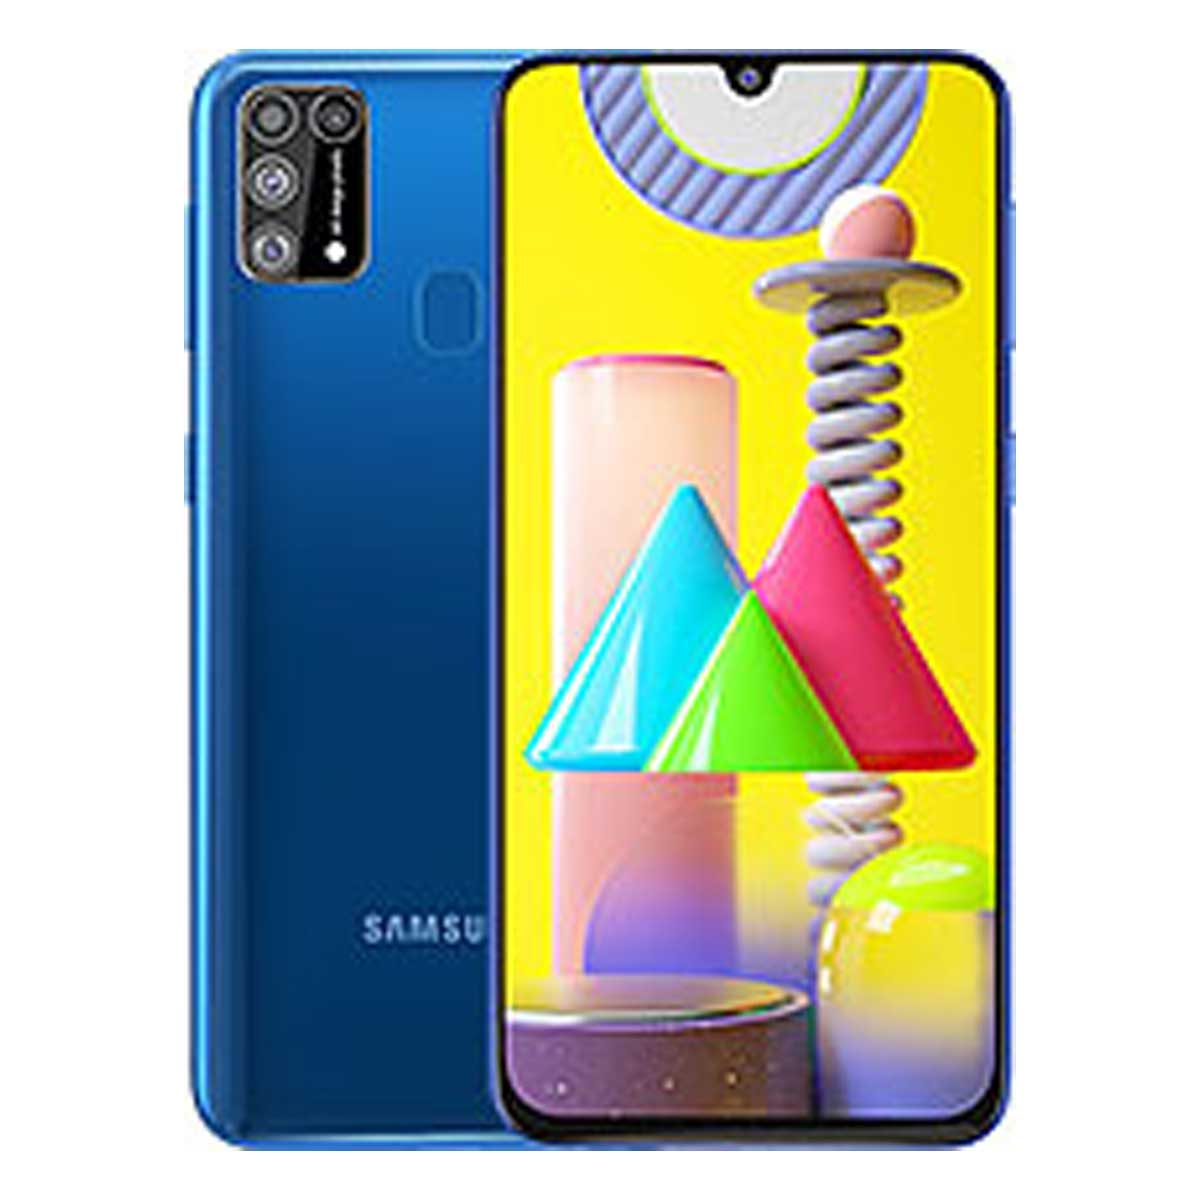 Samsung Galaxy M31 128gb Price In India Full Specs 9th October 2020 Digit